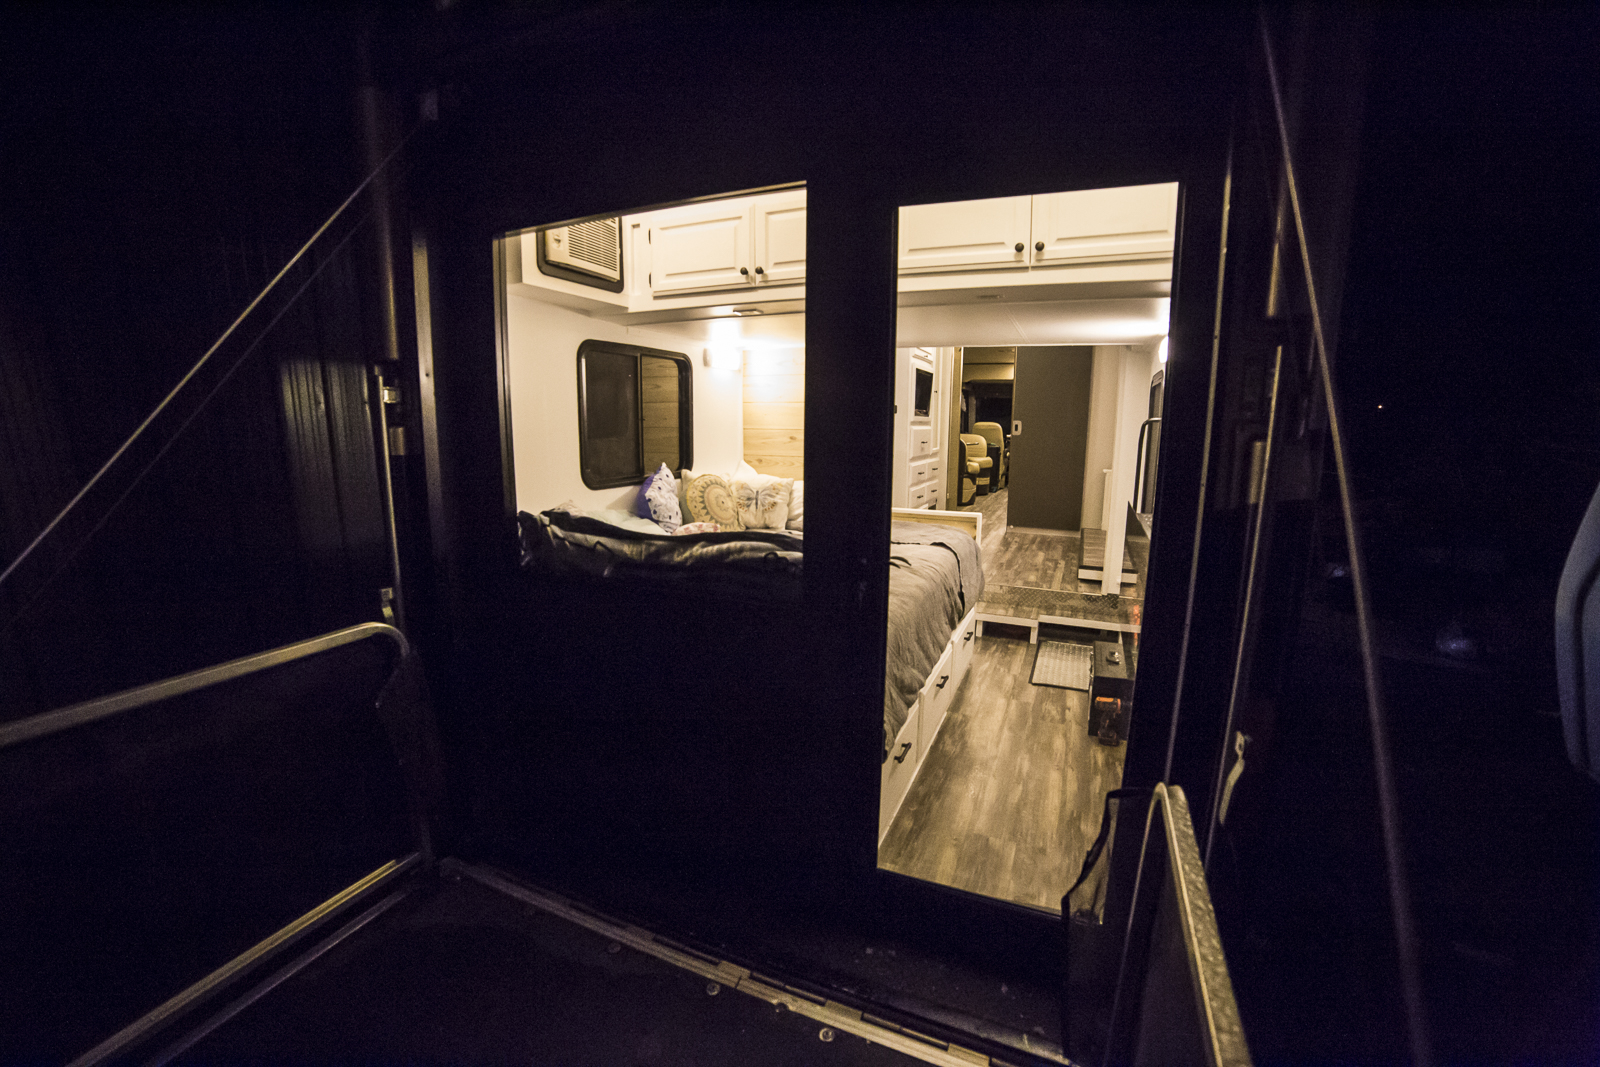 Click image for larger version  Name:RV Renovation Resized-2390.jpg Views:19 Size:1.16 MB ID:189067